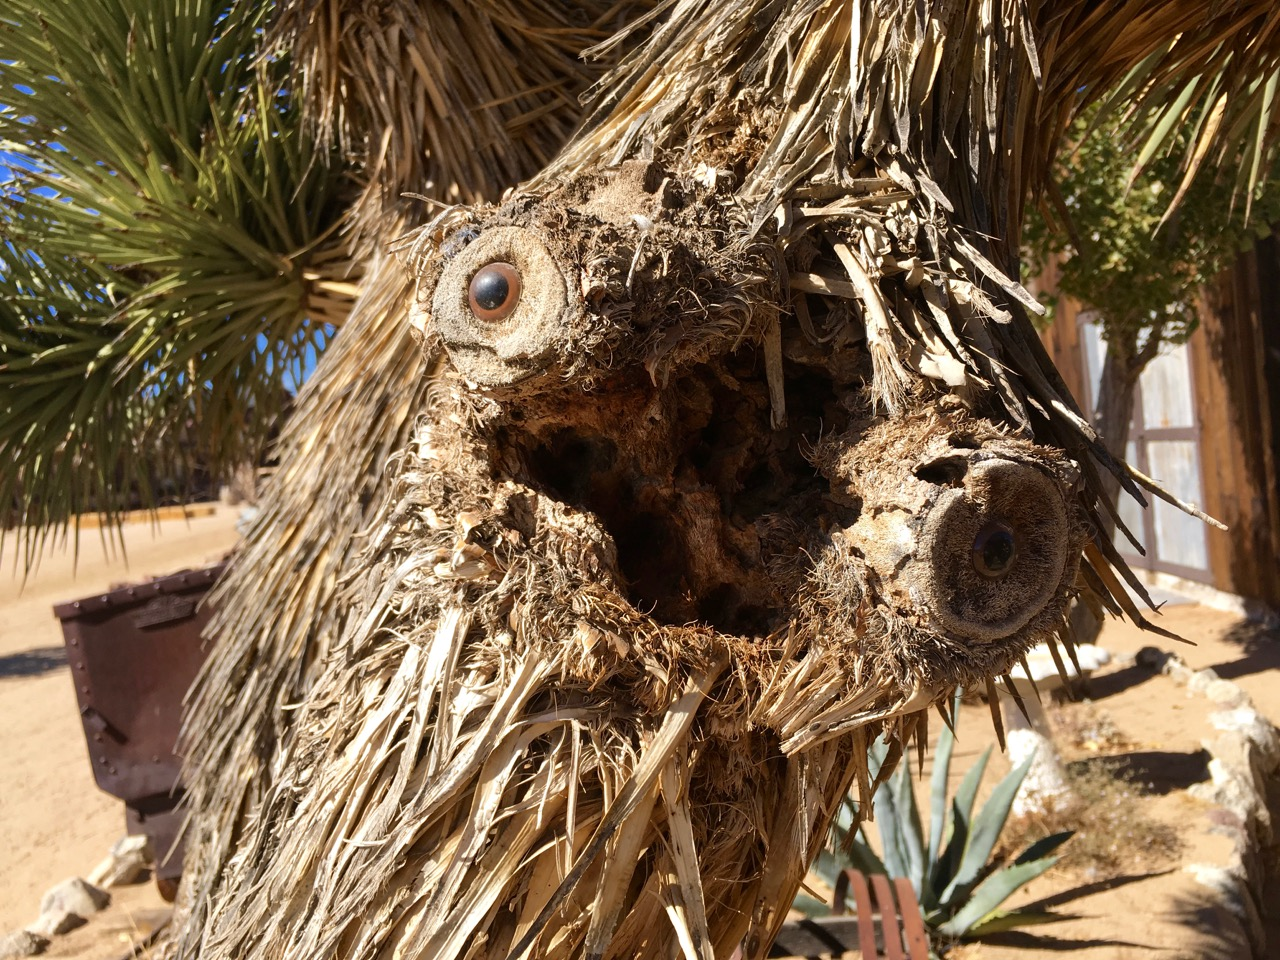 Joshua Tree with glass eyes in joint to make face